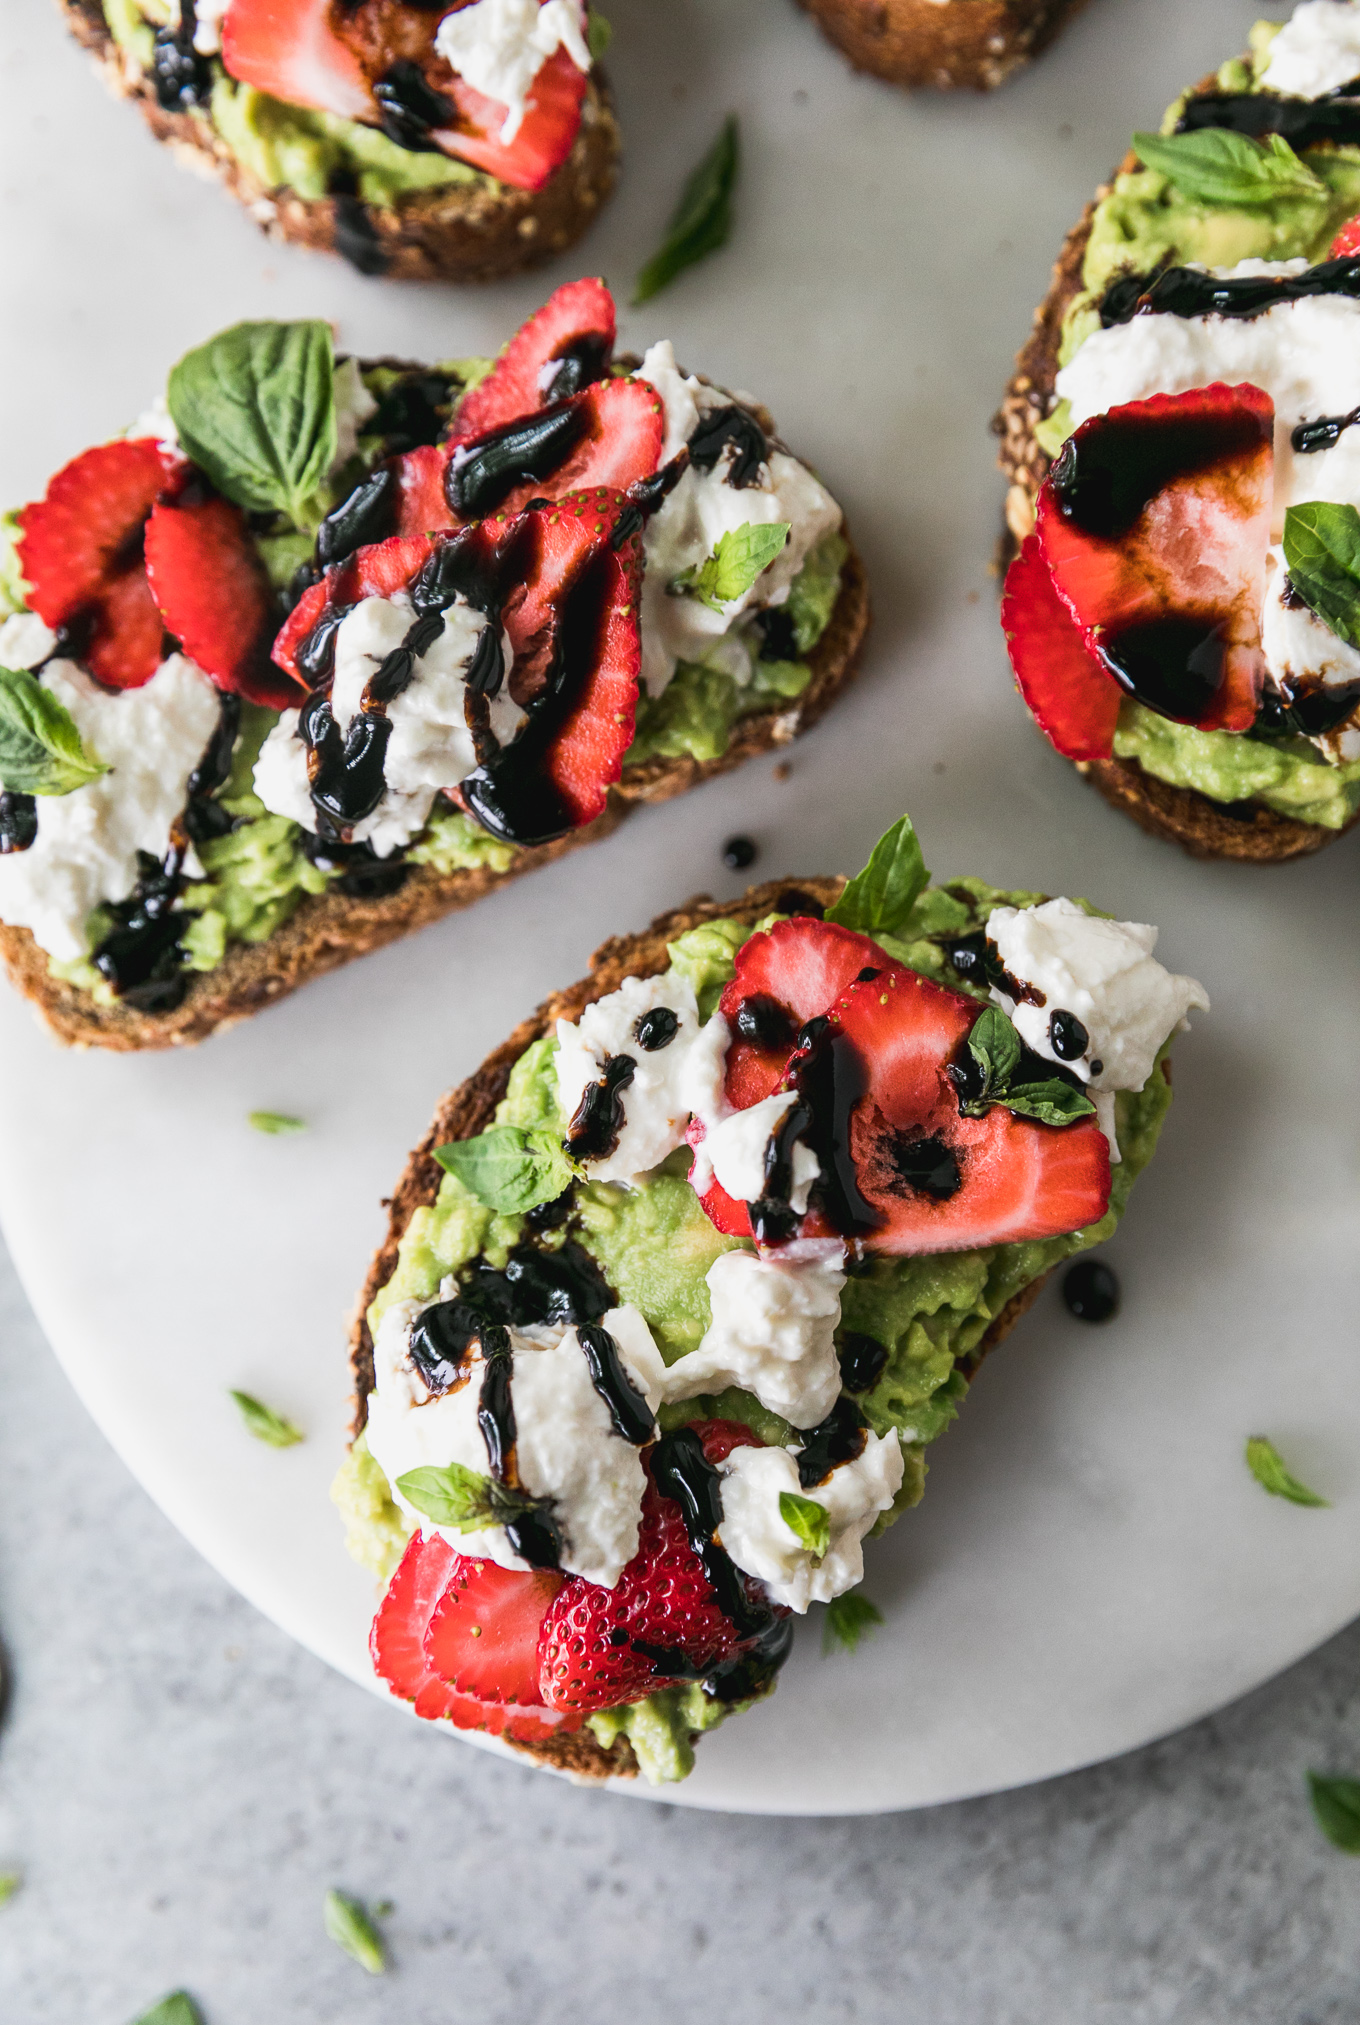 Overhead close up shot of three pieces of avocado toast topped with sliced strawberries, burrata cheese, fresh basil, and a drizzle of balsamic glaze